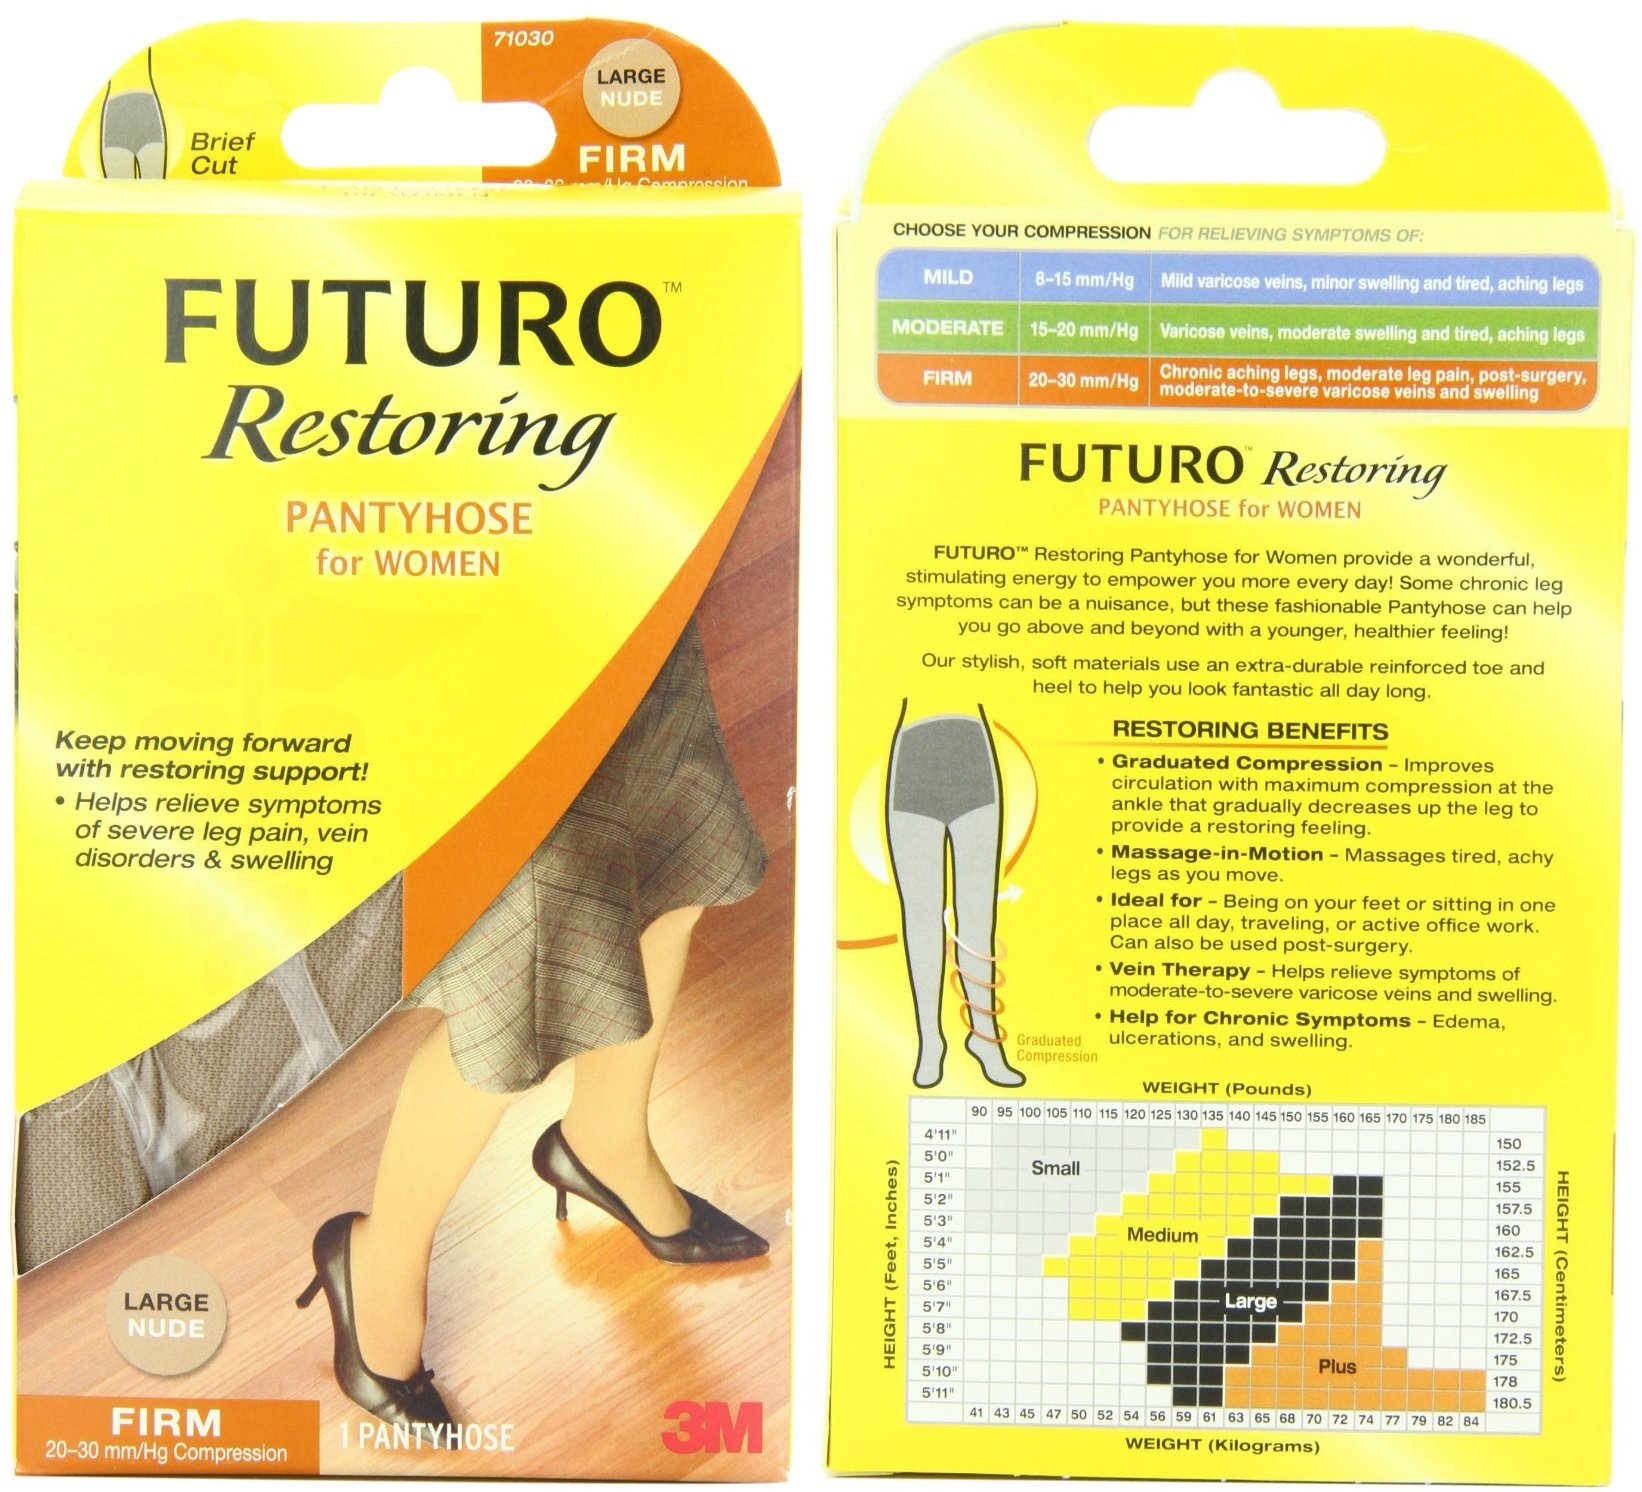 Futuro Pantyhose for Women, Nude, Large, Firm (20-30 mm/Hg) (4 Pack)